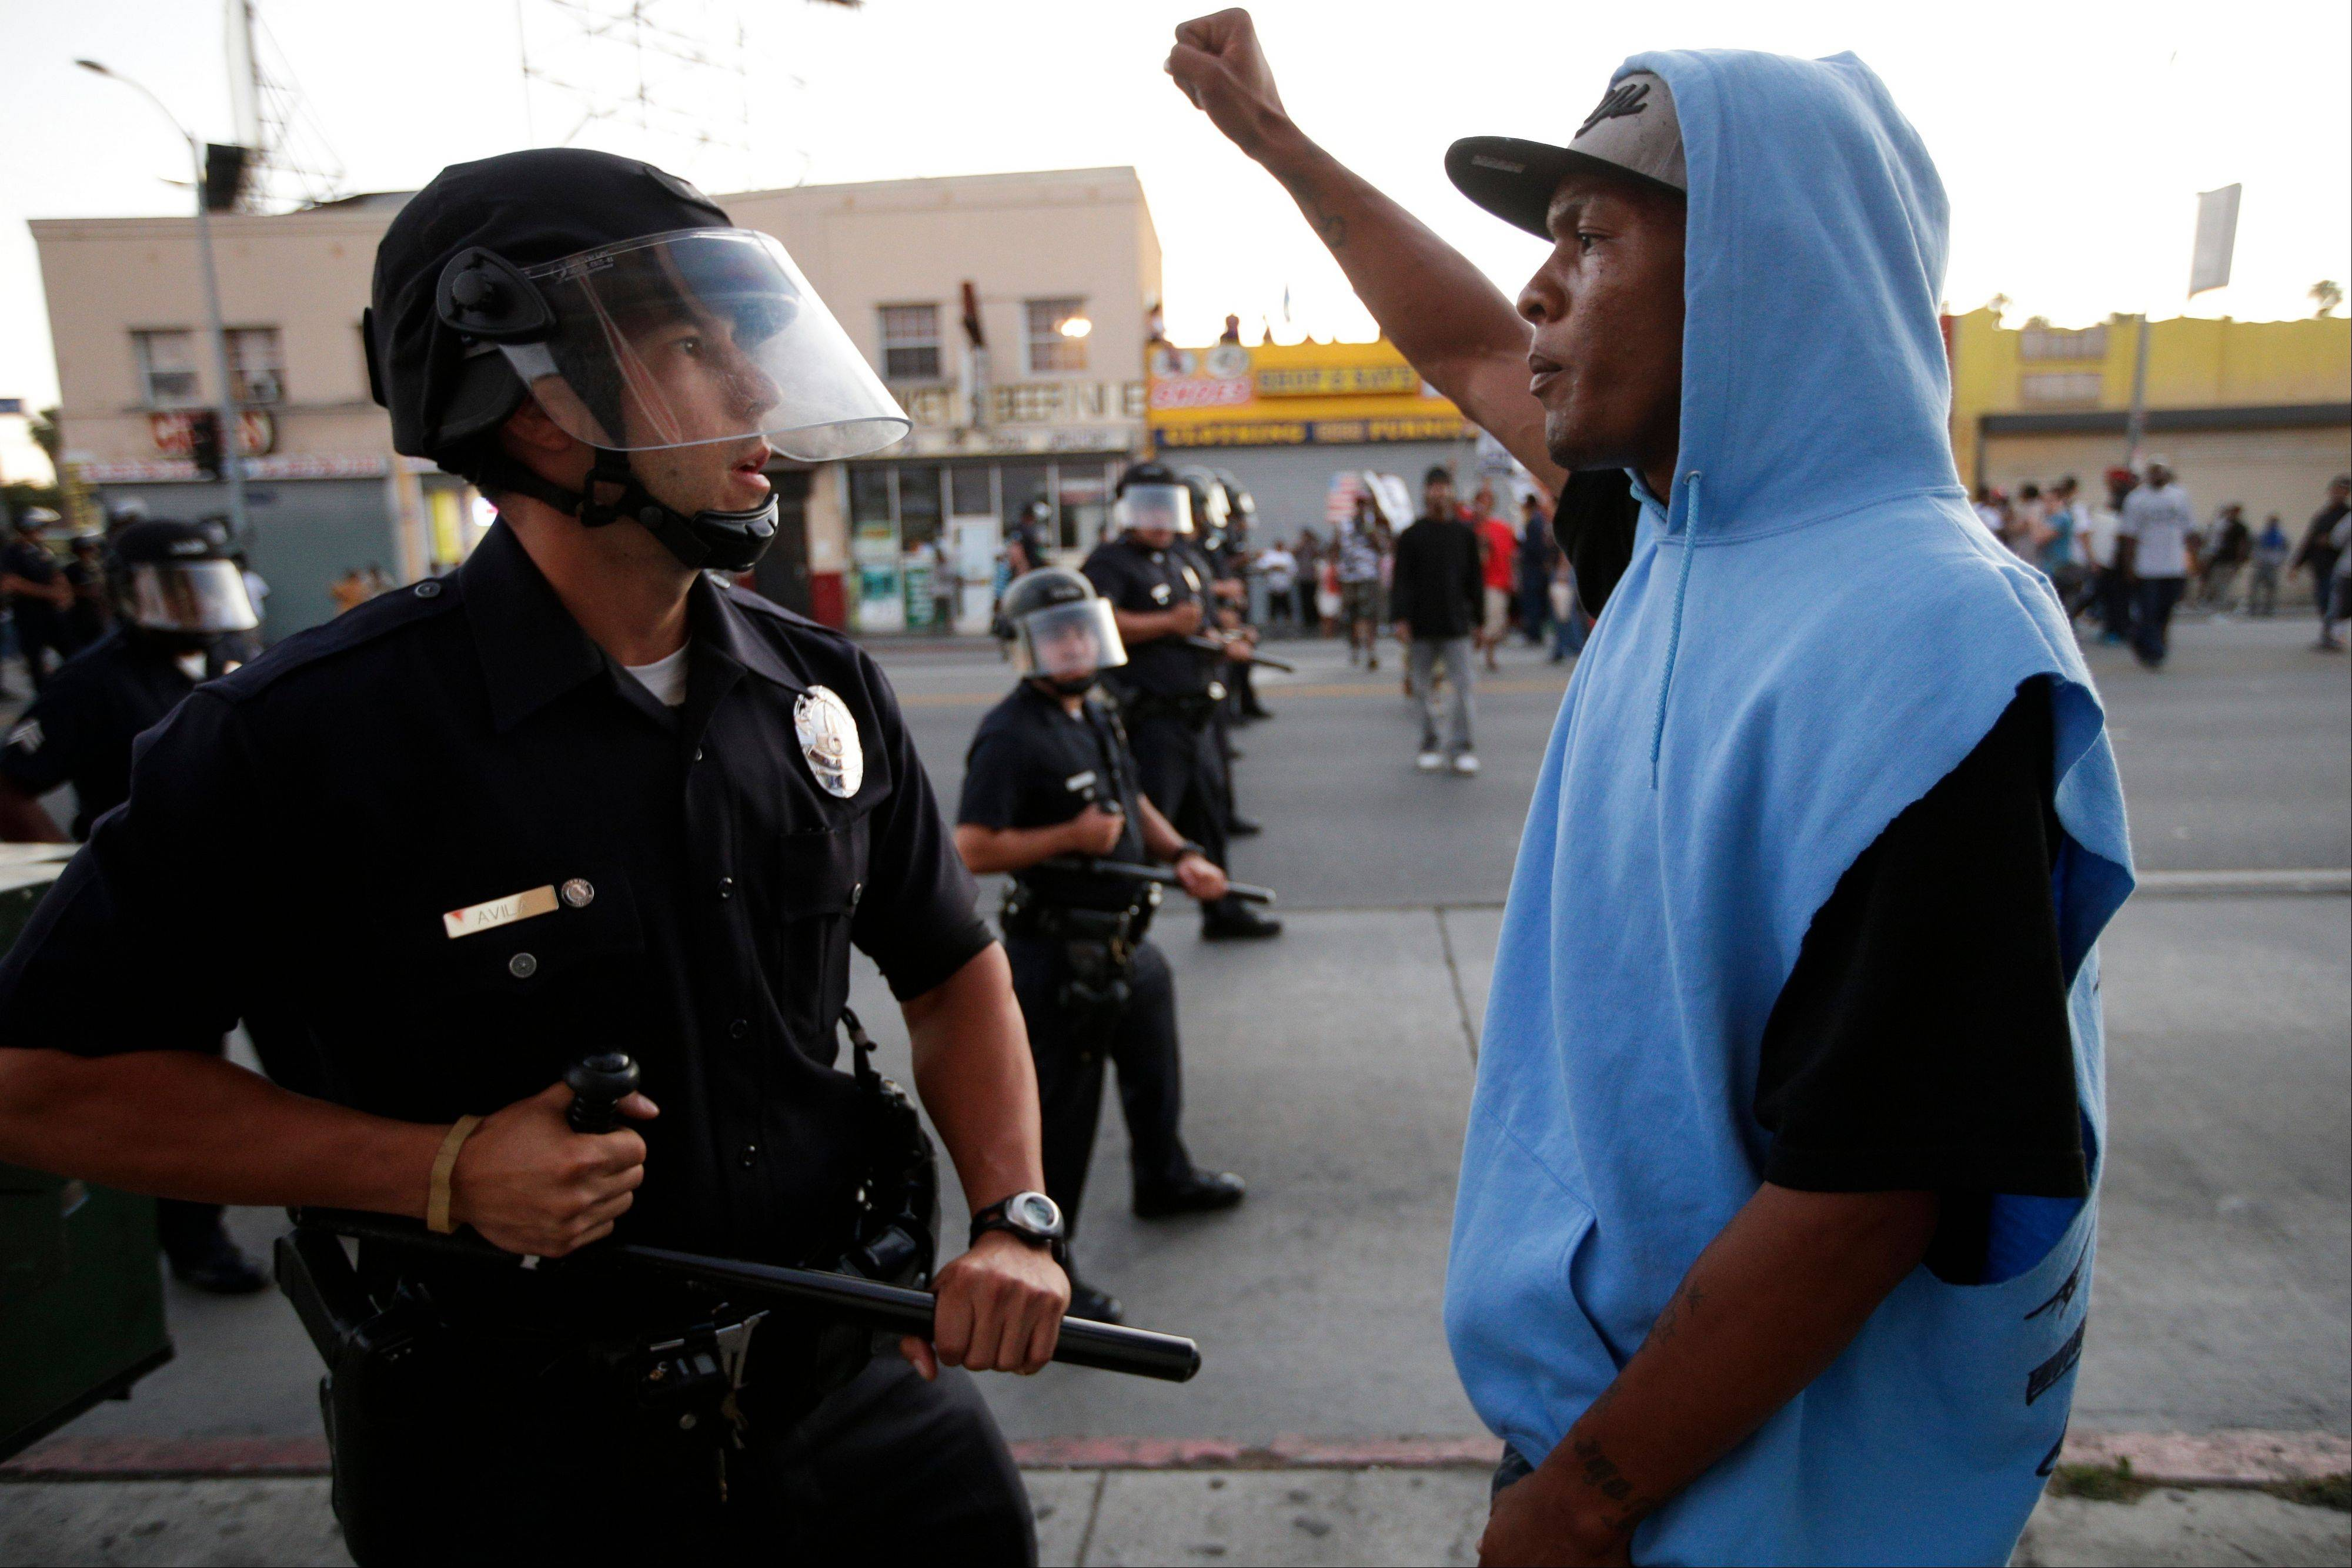 A protester confronts a Los Angles police officer Monday during a demonstration in reaction to the acquittal of neighborhood watch volunteer George Zimmerman.